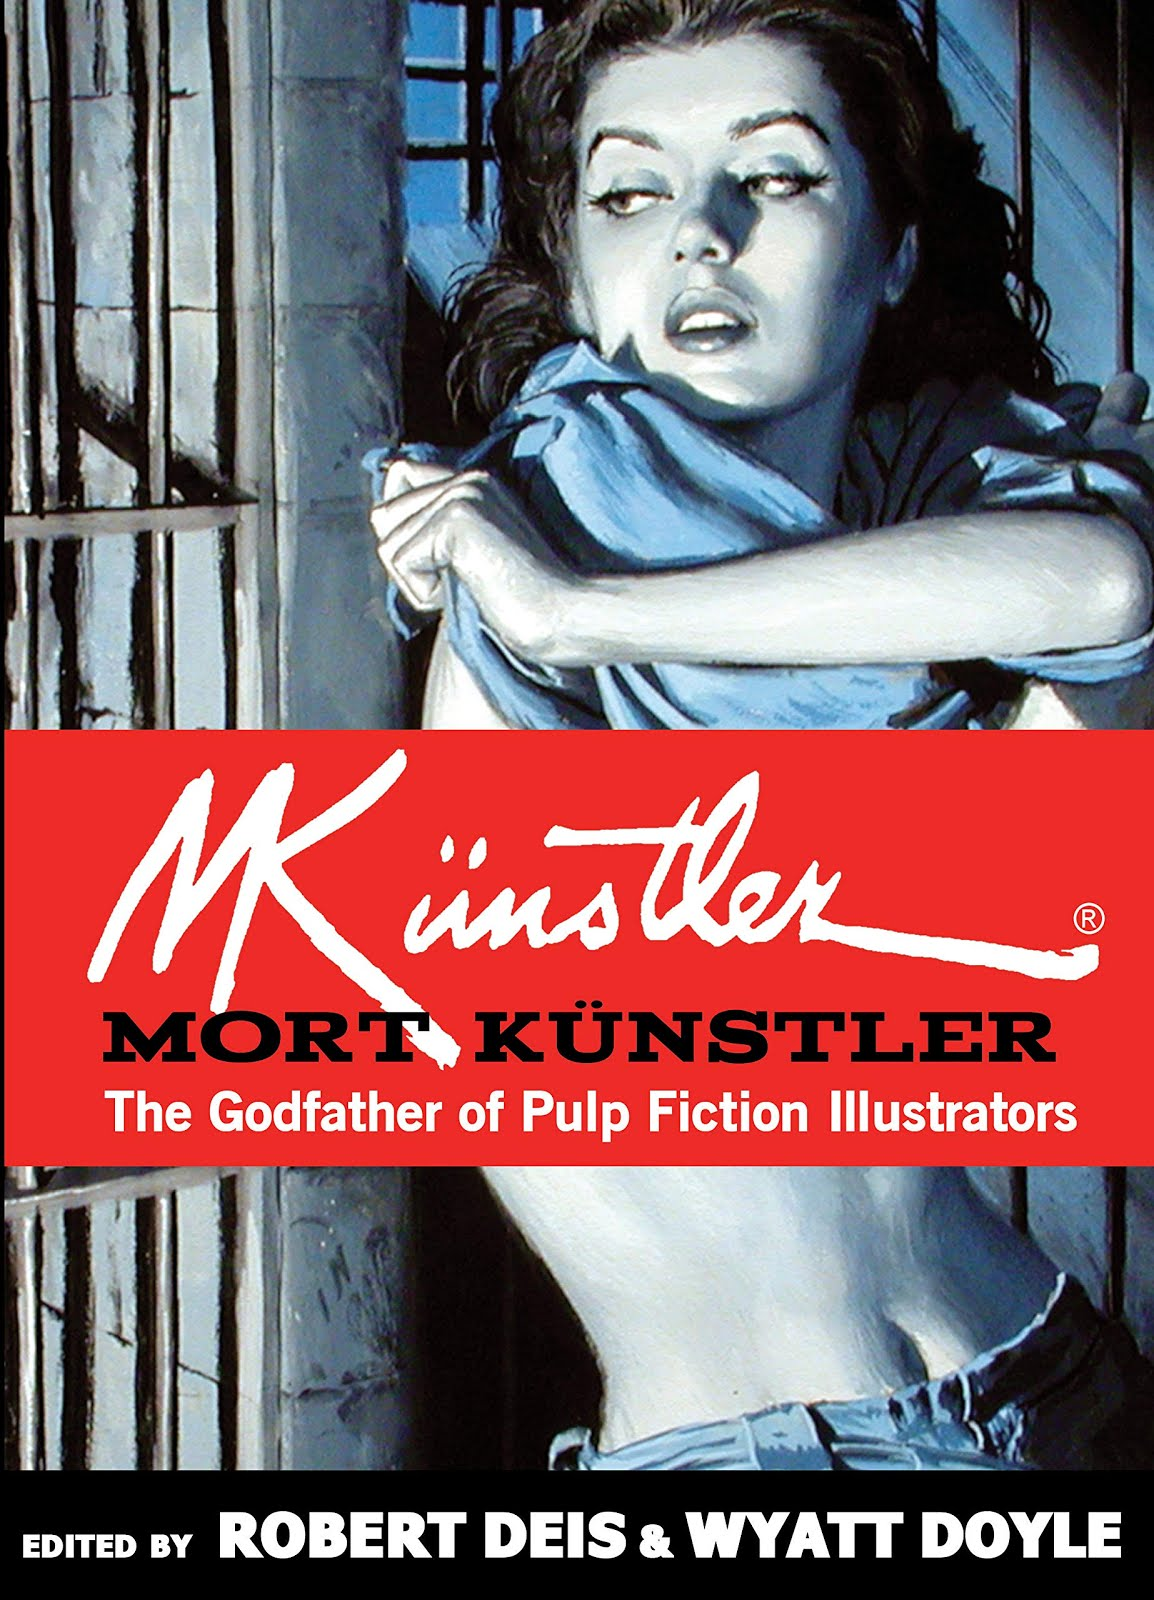 THE GODFATHER OF PULP FICTION ILLUSTRATORS / Mort Künstler